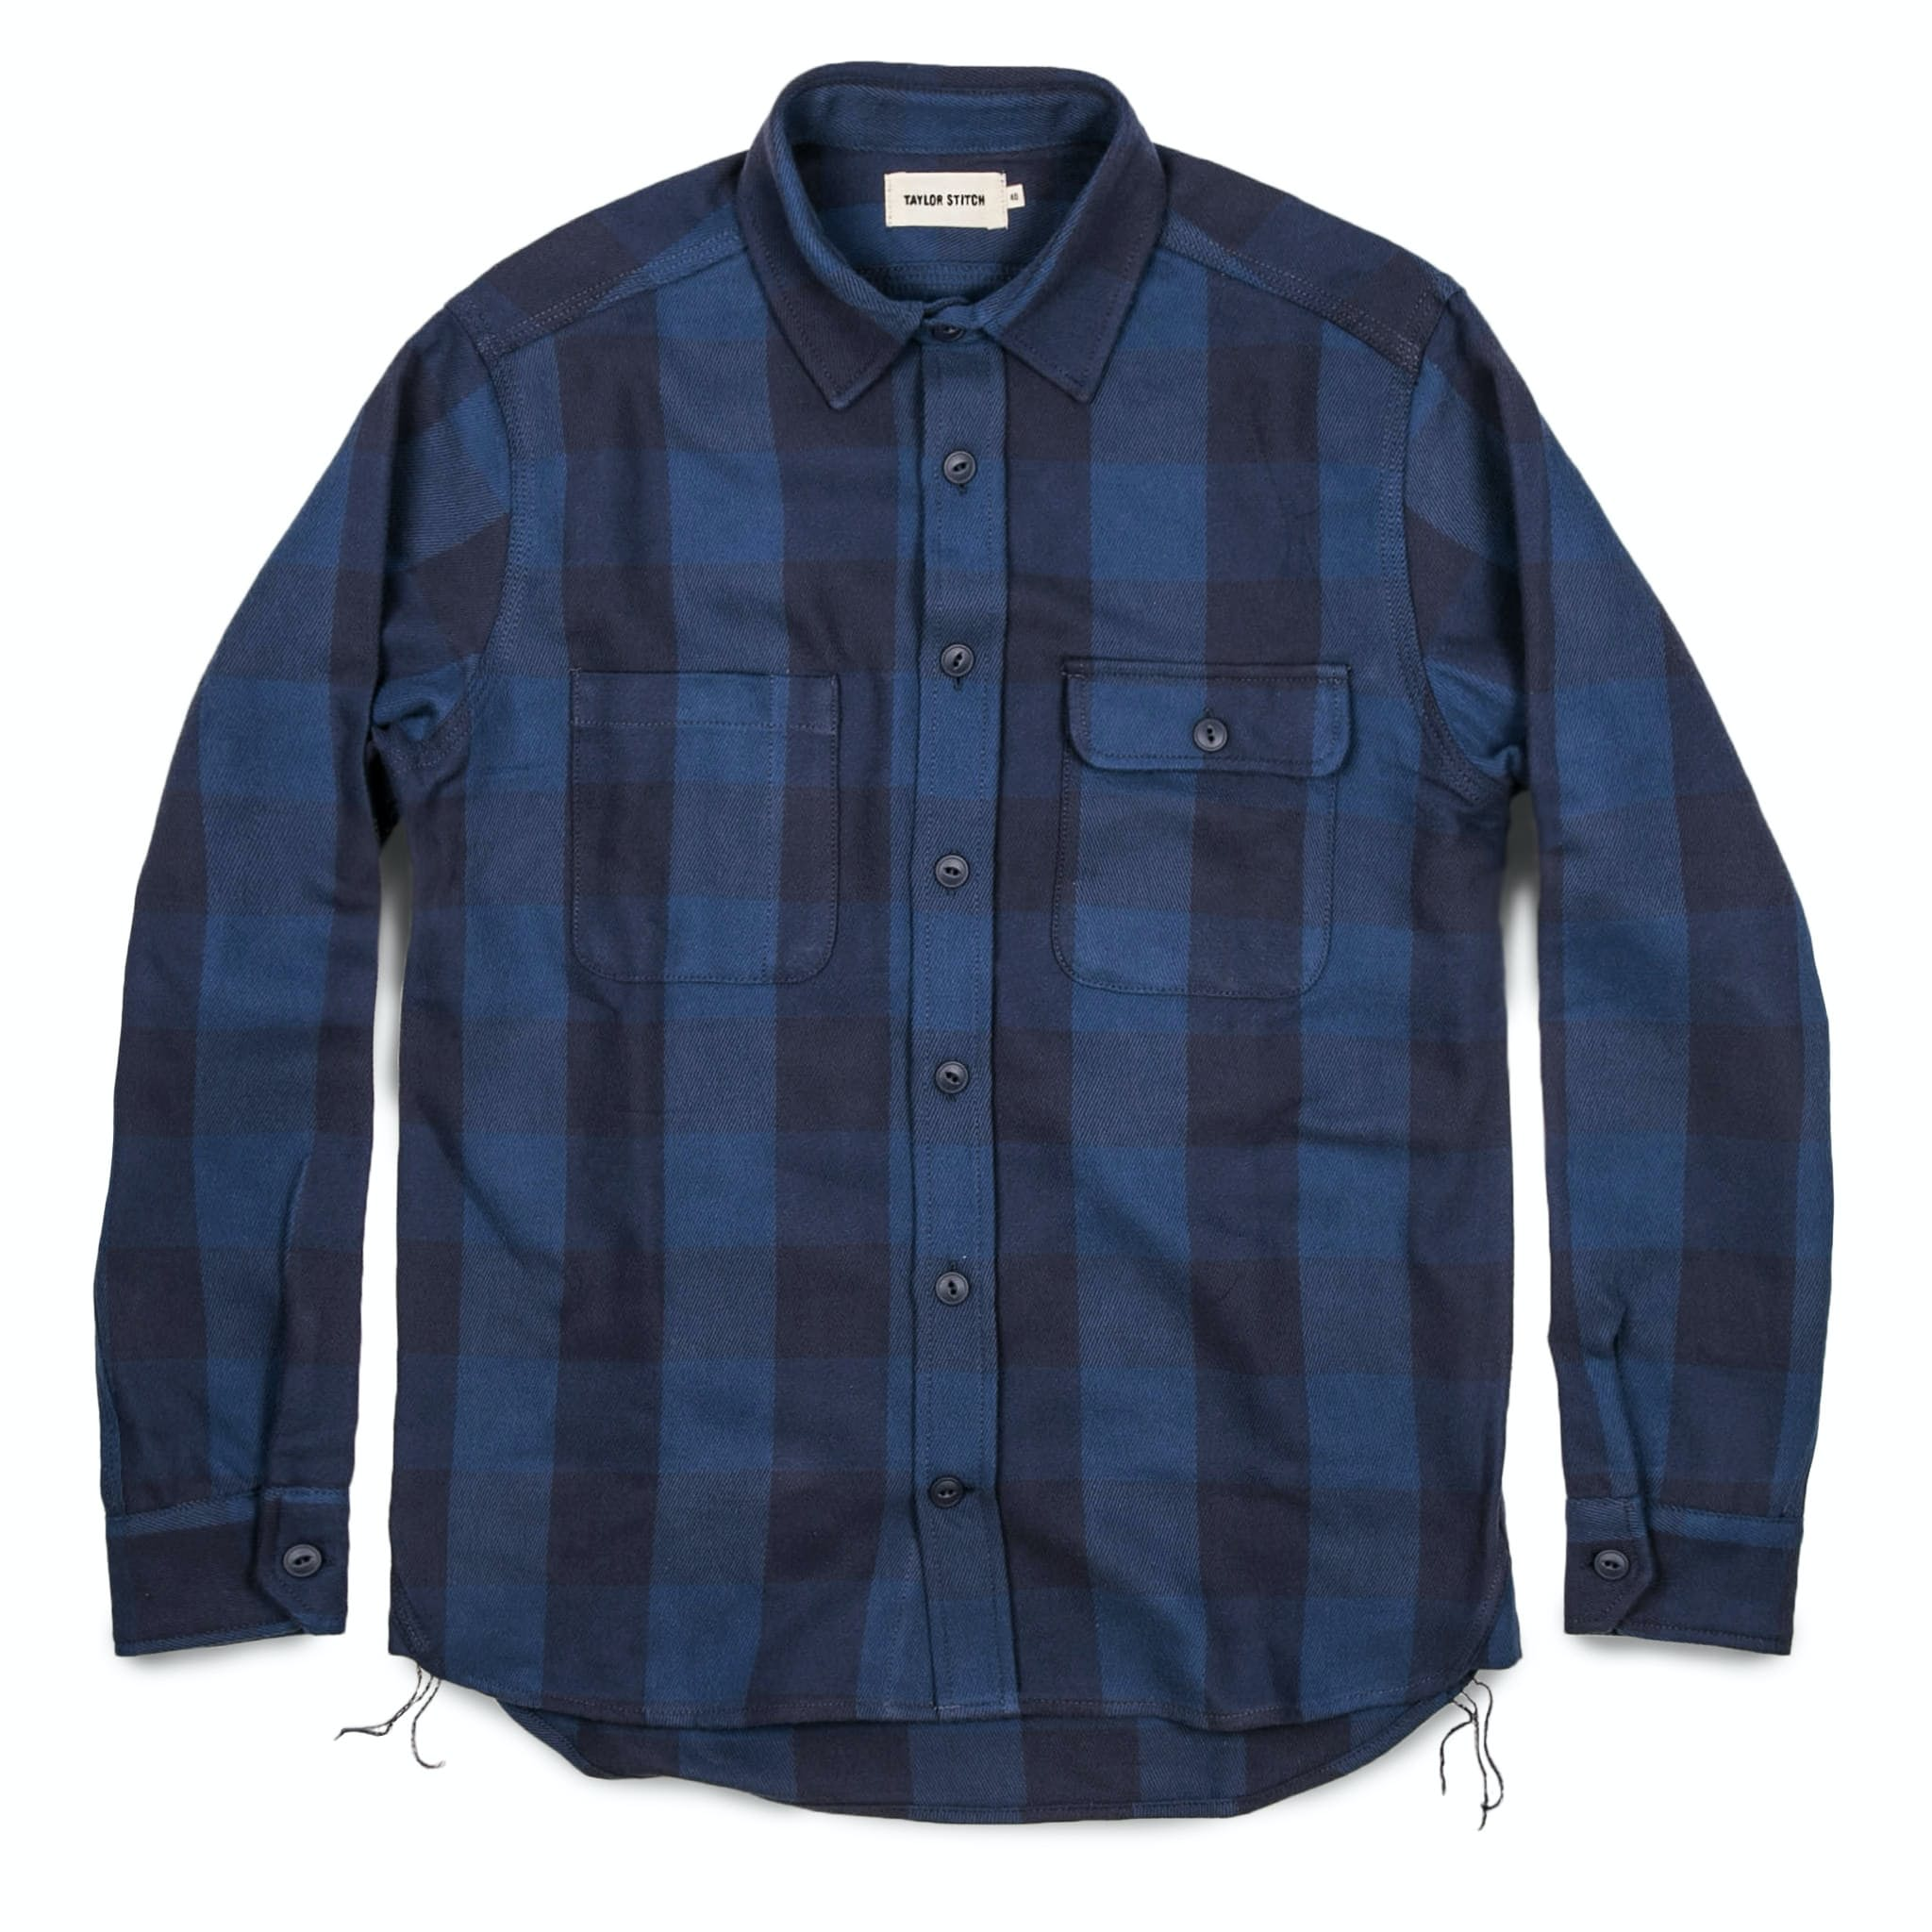 Txp6hkyzhl taylor stitch the moto shirt 0 original